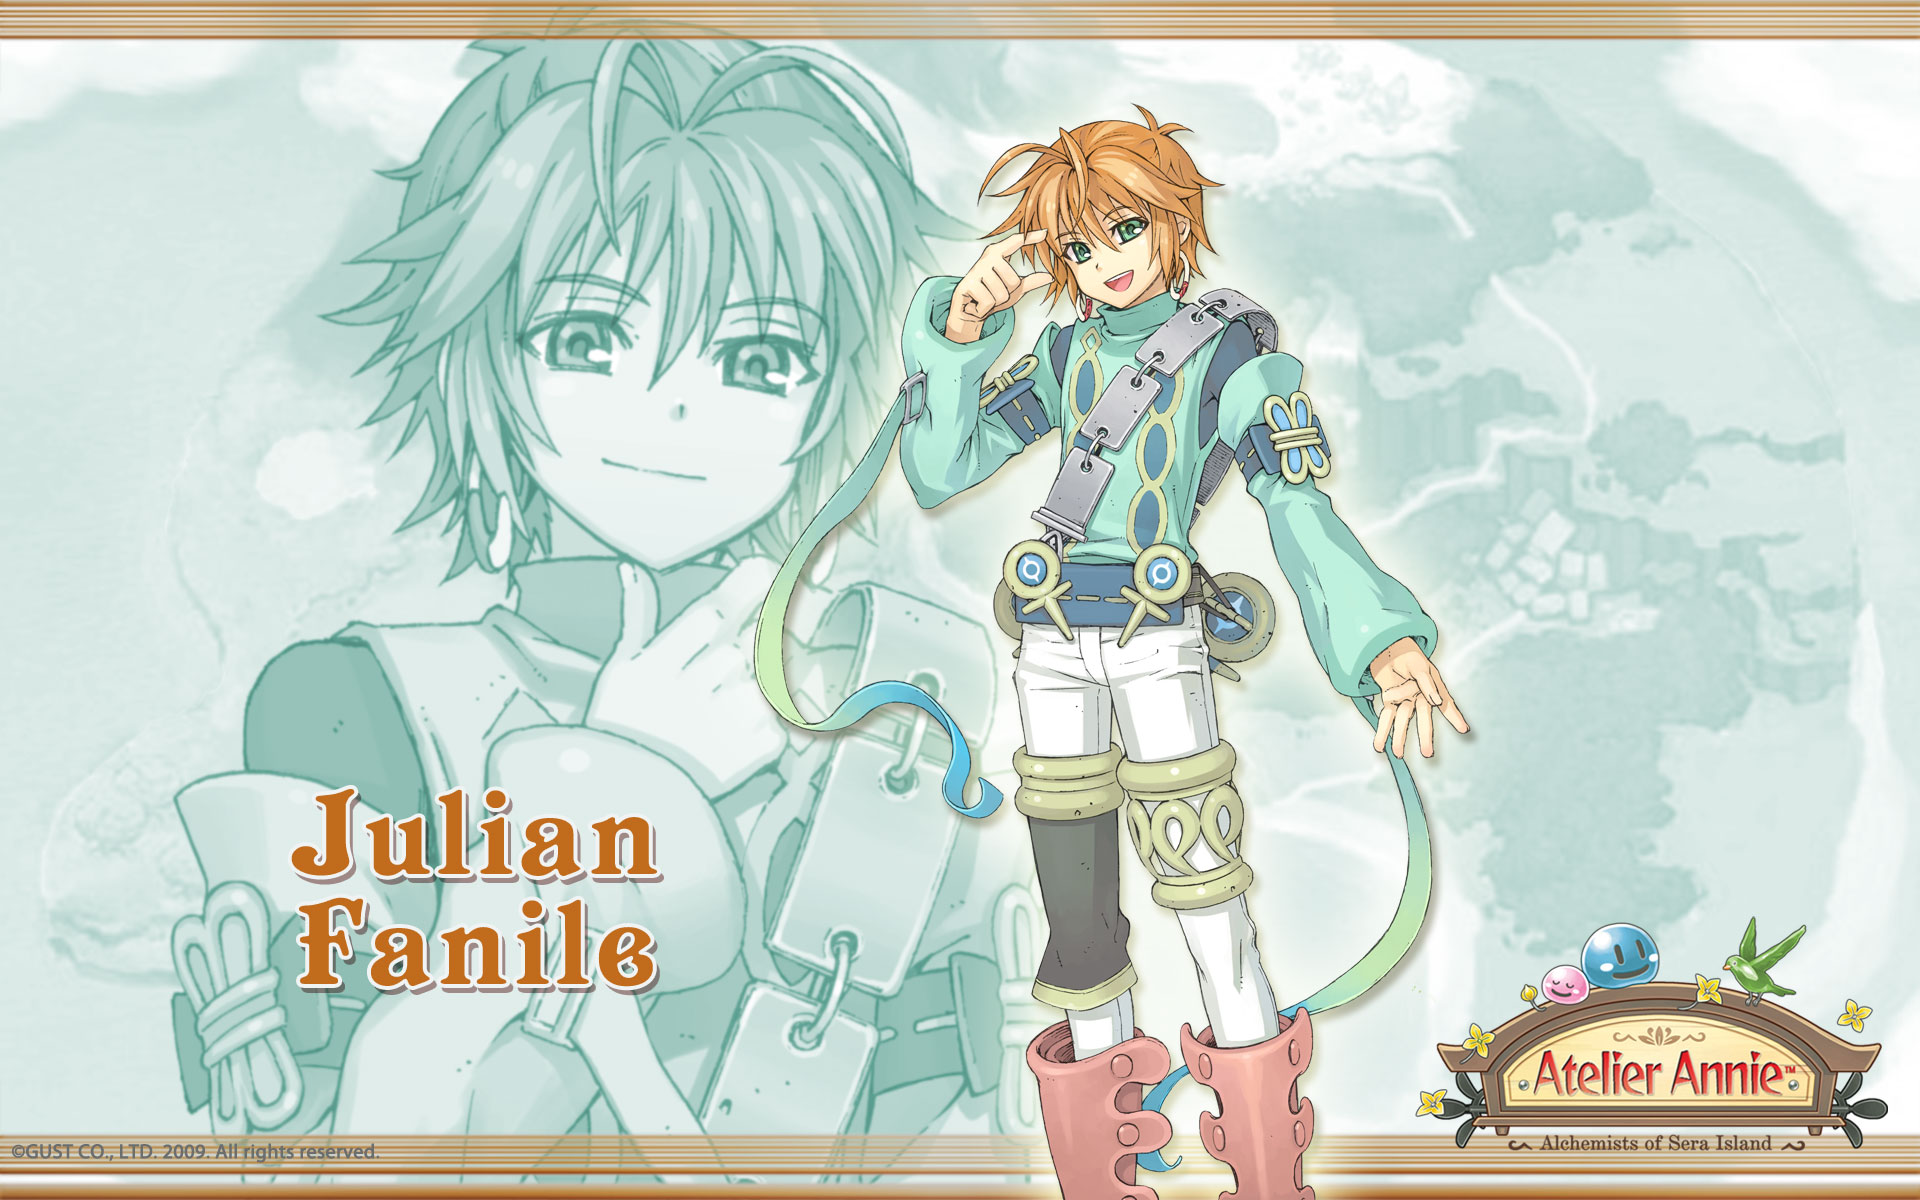 Atelier Annie Alchemists of Sera Island Wallpaper 011 Julian Fanile